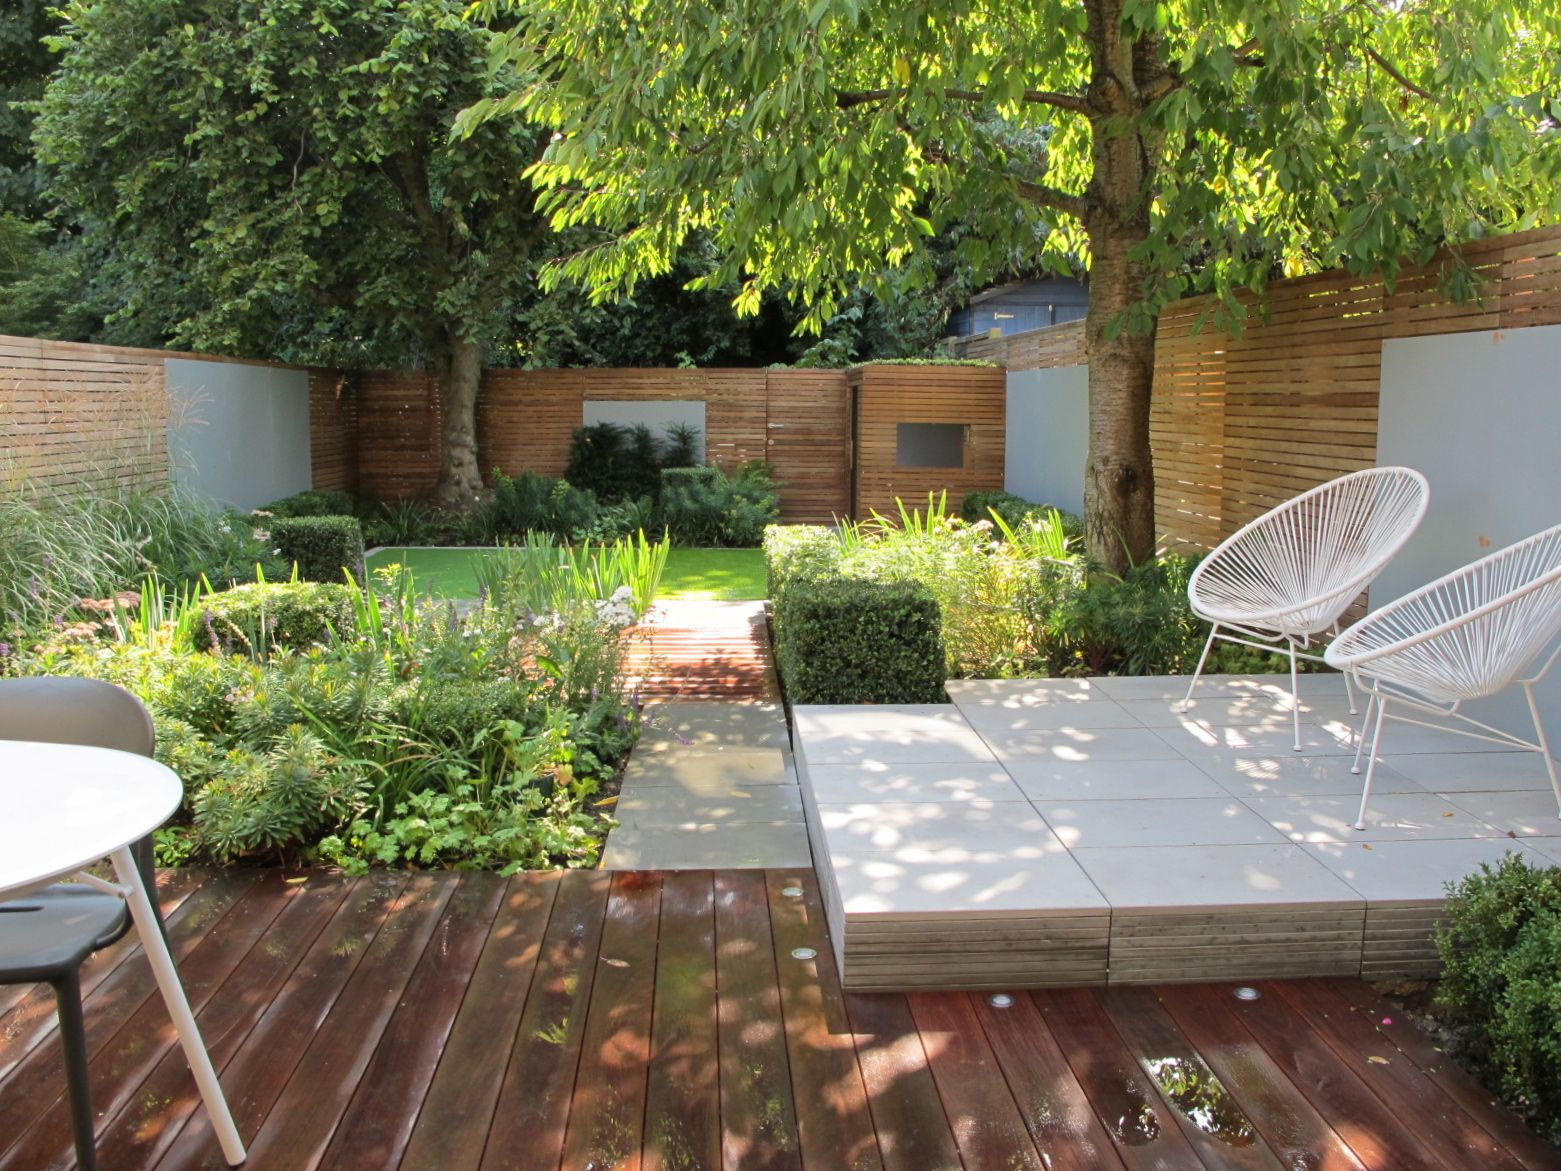 Garden As Featured On Alan Titchmarsh 39 S Show Love Your